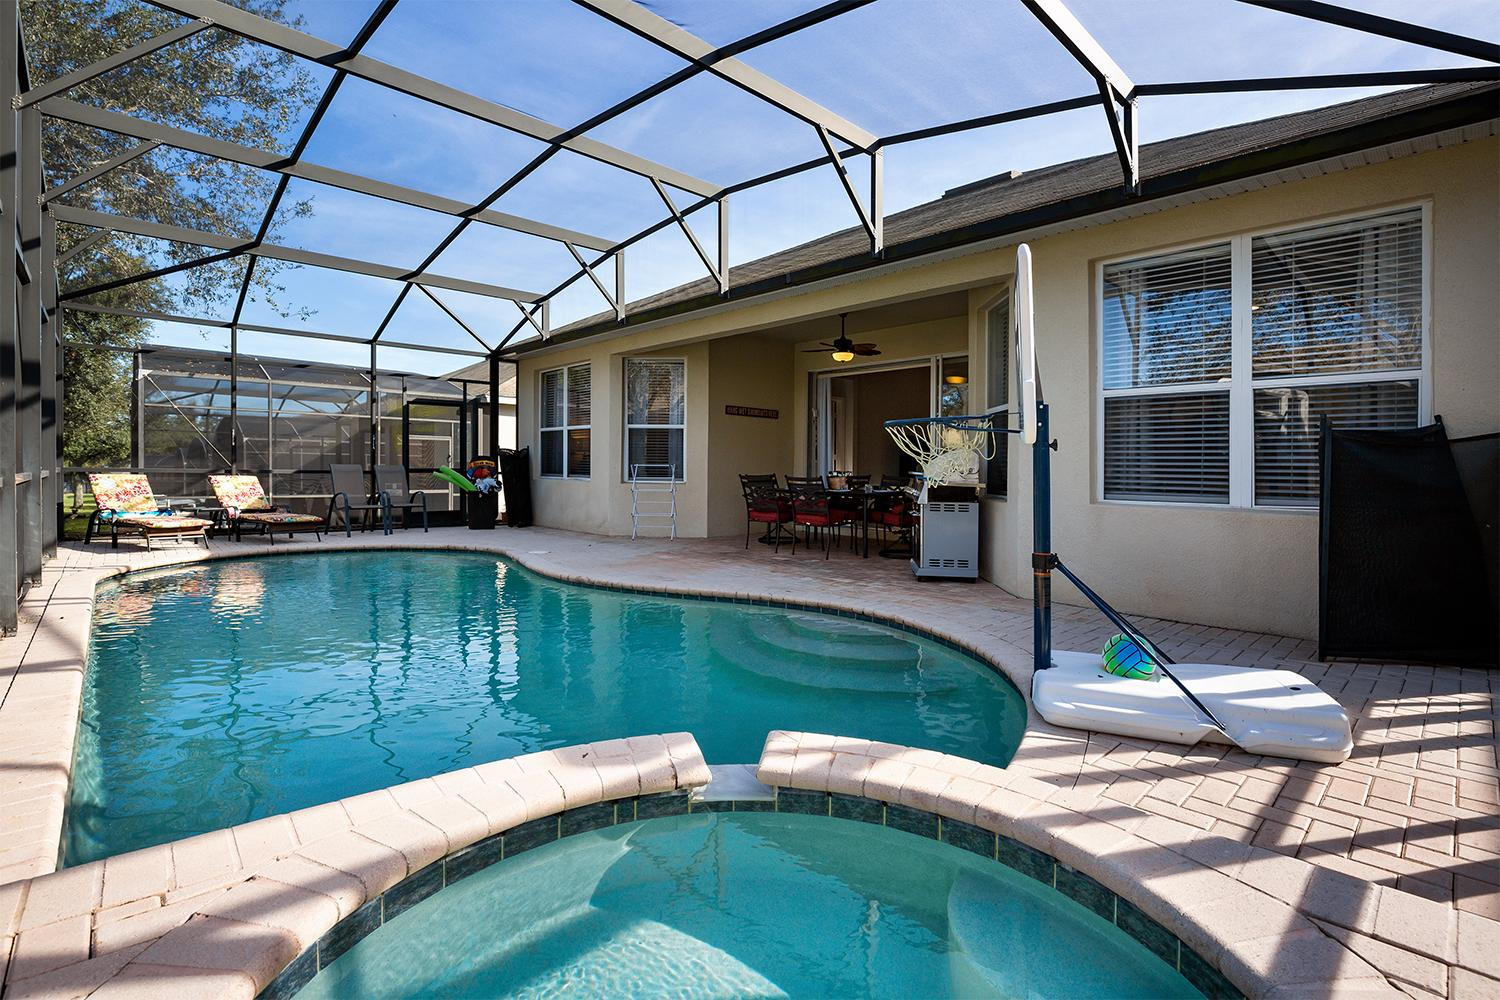 Private screened in pool & spa w/ pool basketball hoop, free BBQ grill & outdoor entertainment area